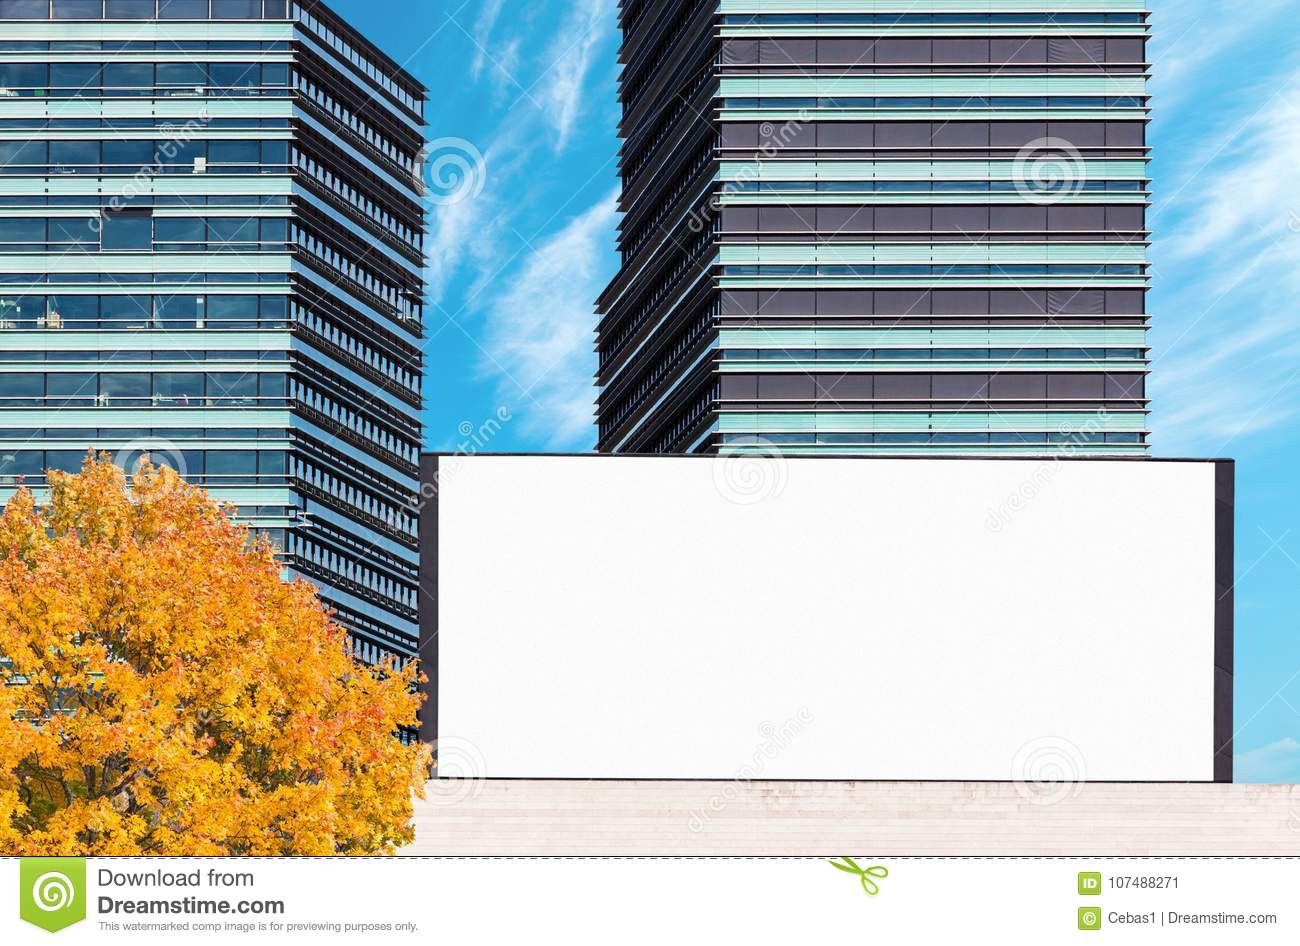 Blank outdoor billboard mockup with modern business buildings